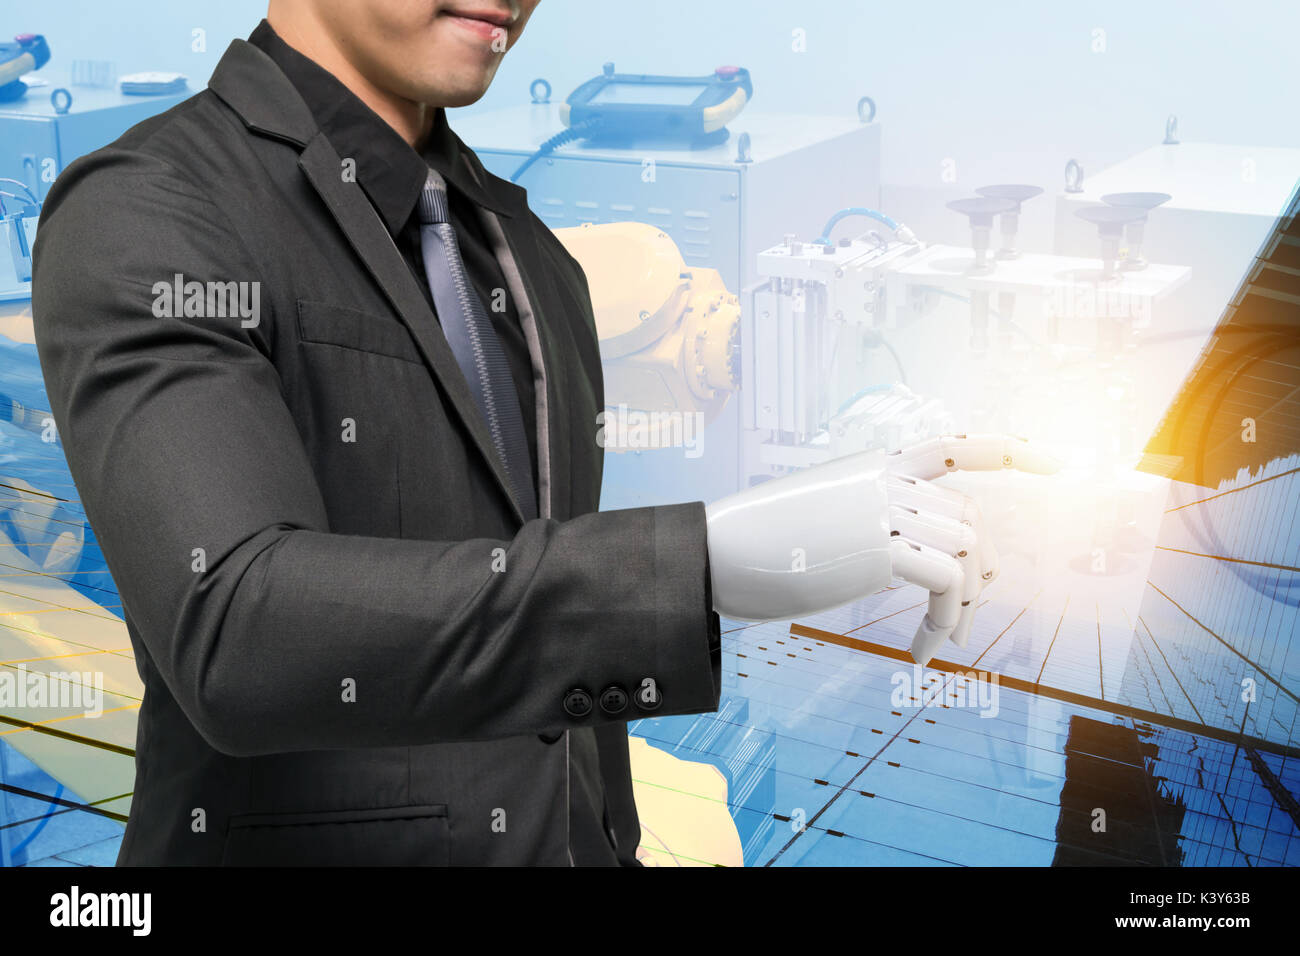 Artificial intelligence (ai) robot technology in smart factory concept. Male business suit with robotic hand point finger and double exposure of autom - Stock Image